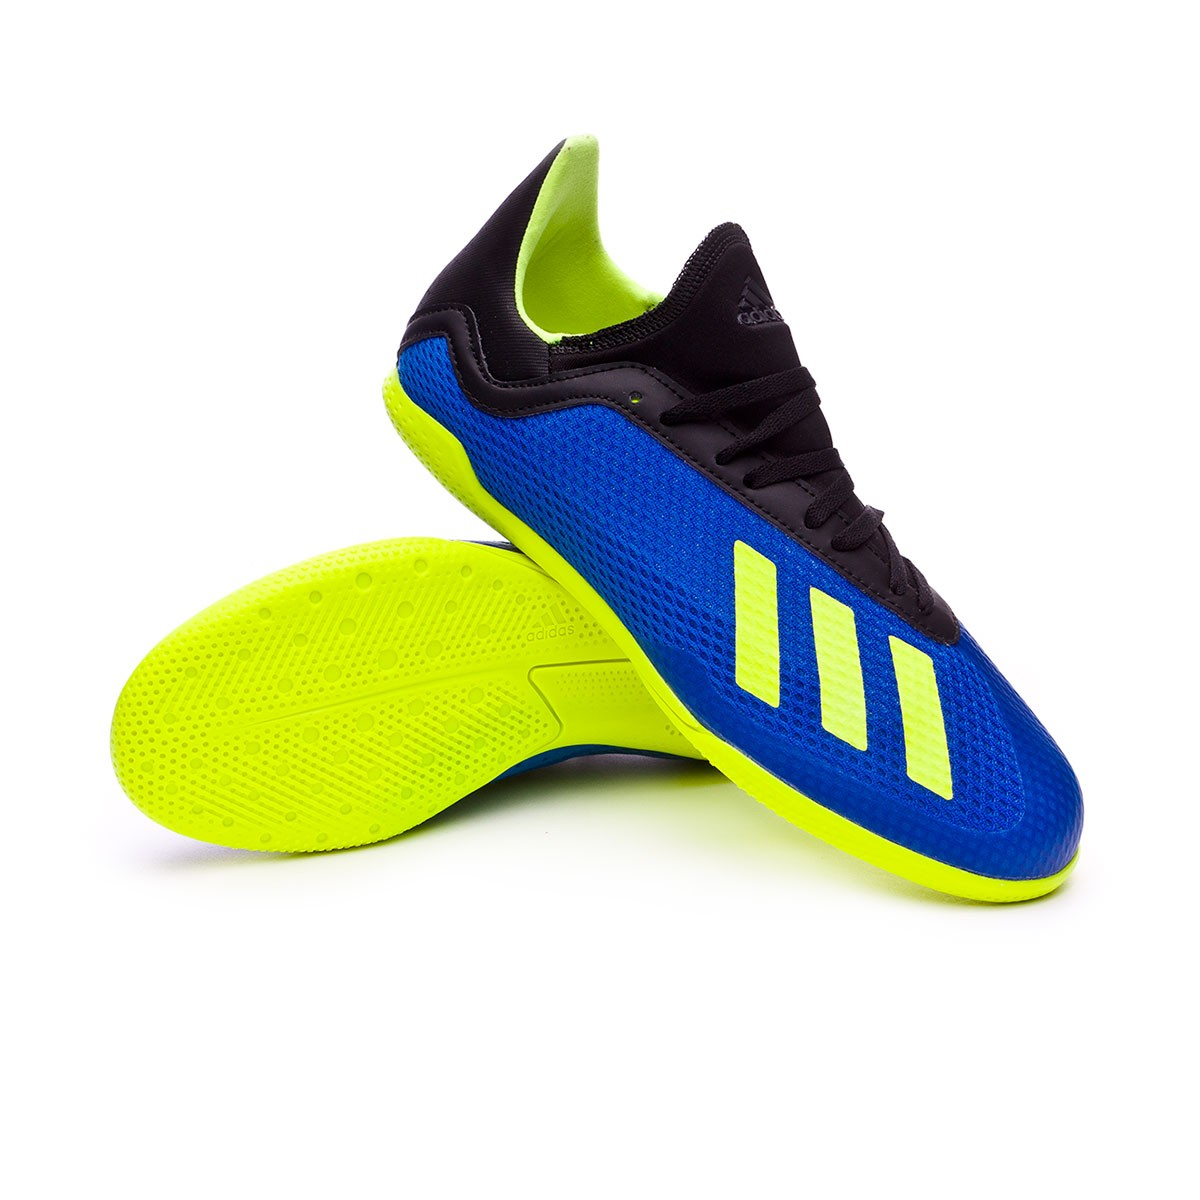 zapatilla adidas x tango 18 3 in ni o foot blue solar yellow black soloporteros es ahora. Black Bedroom Furniture Sets. Home Design Ideas